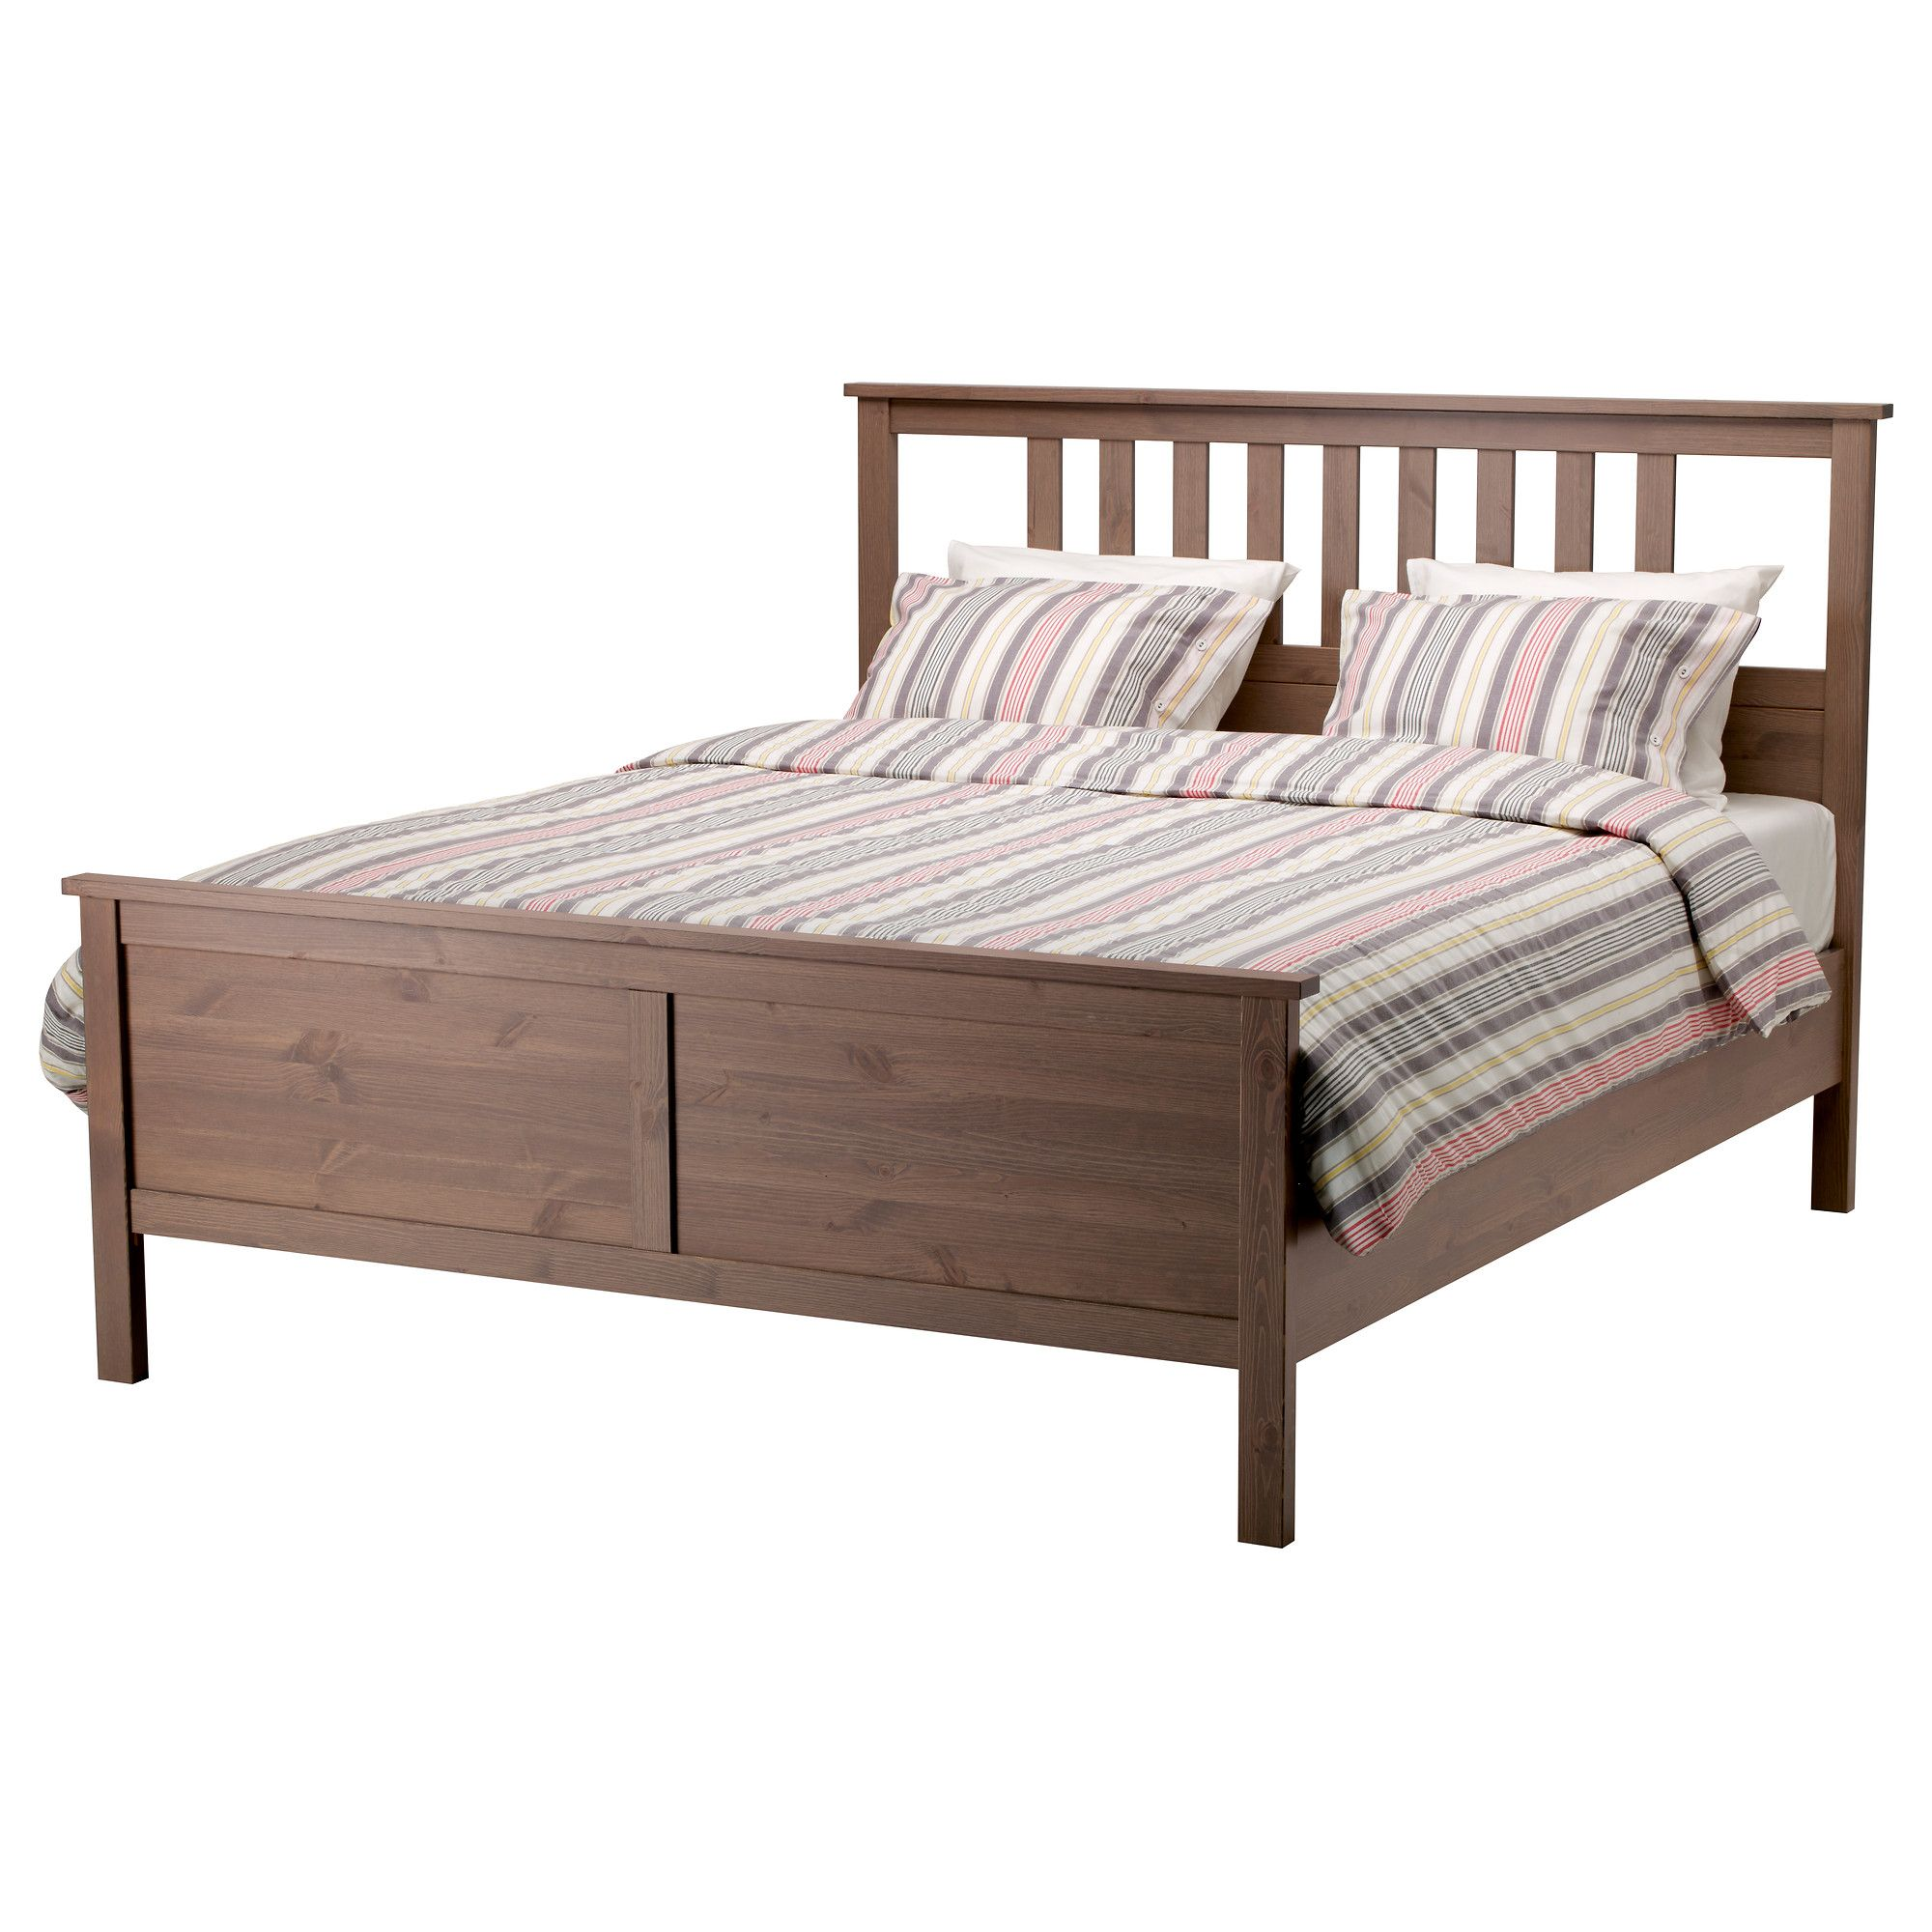 Furniture Home Furnishings Find Your Inspiration Hemnes Bed Ikea Hemnes Bed Hemnes